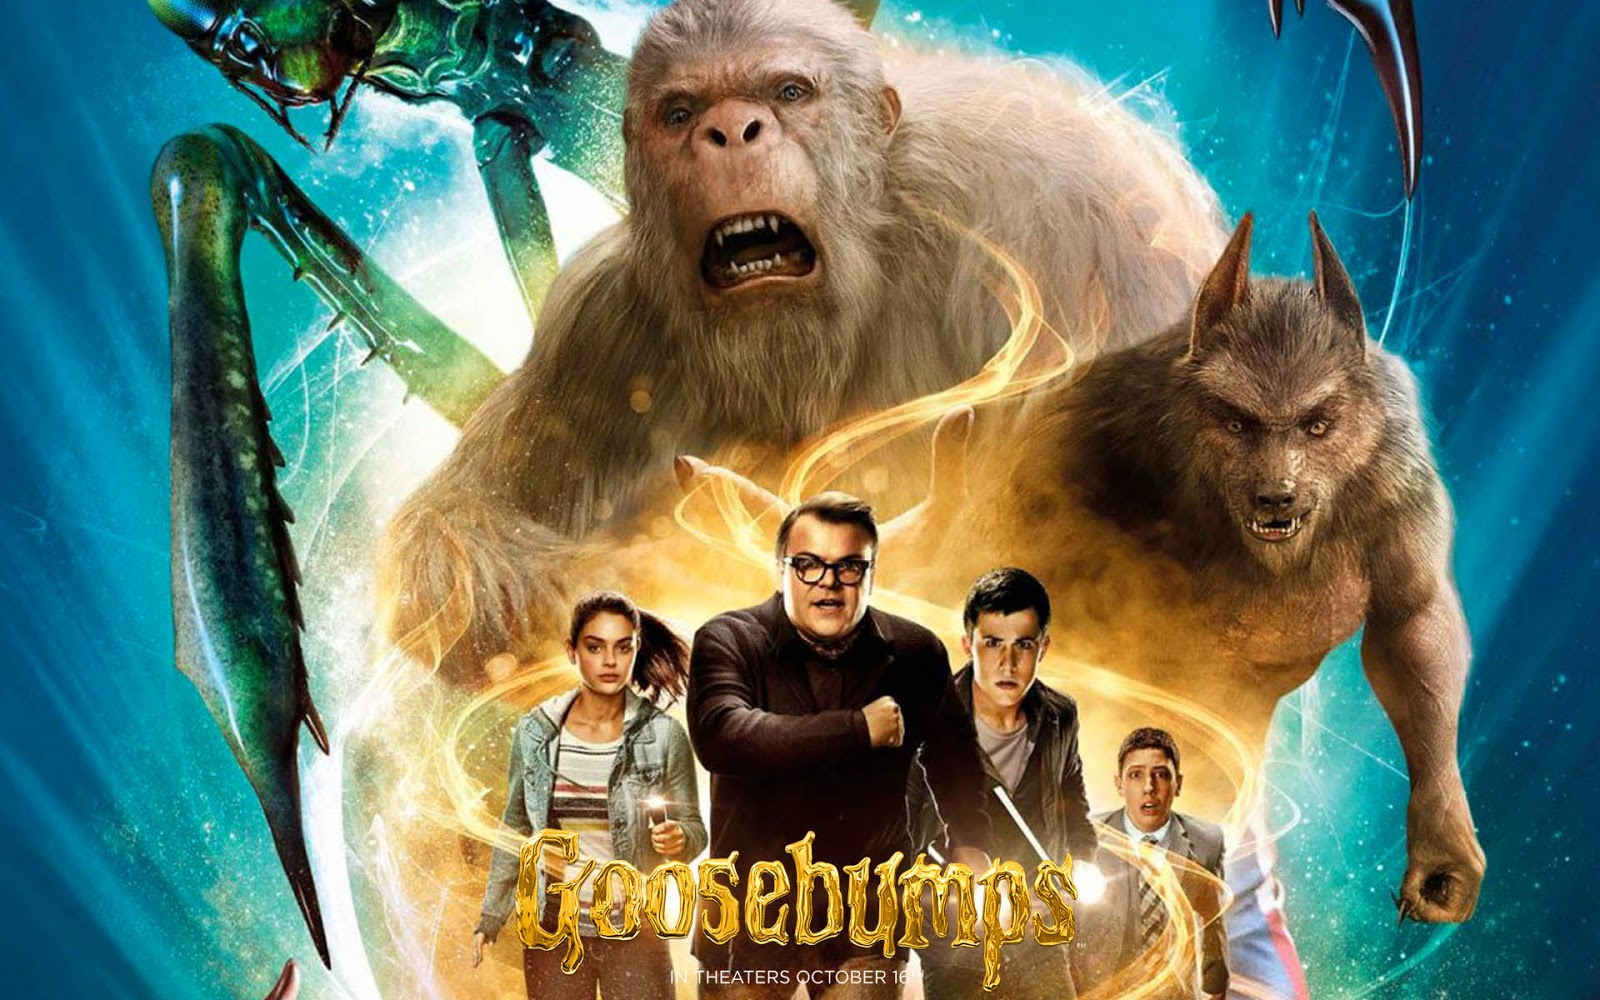 Mp4 Hollywood Movies Download